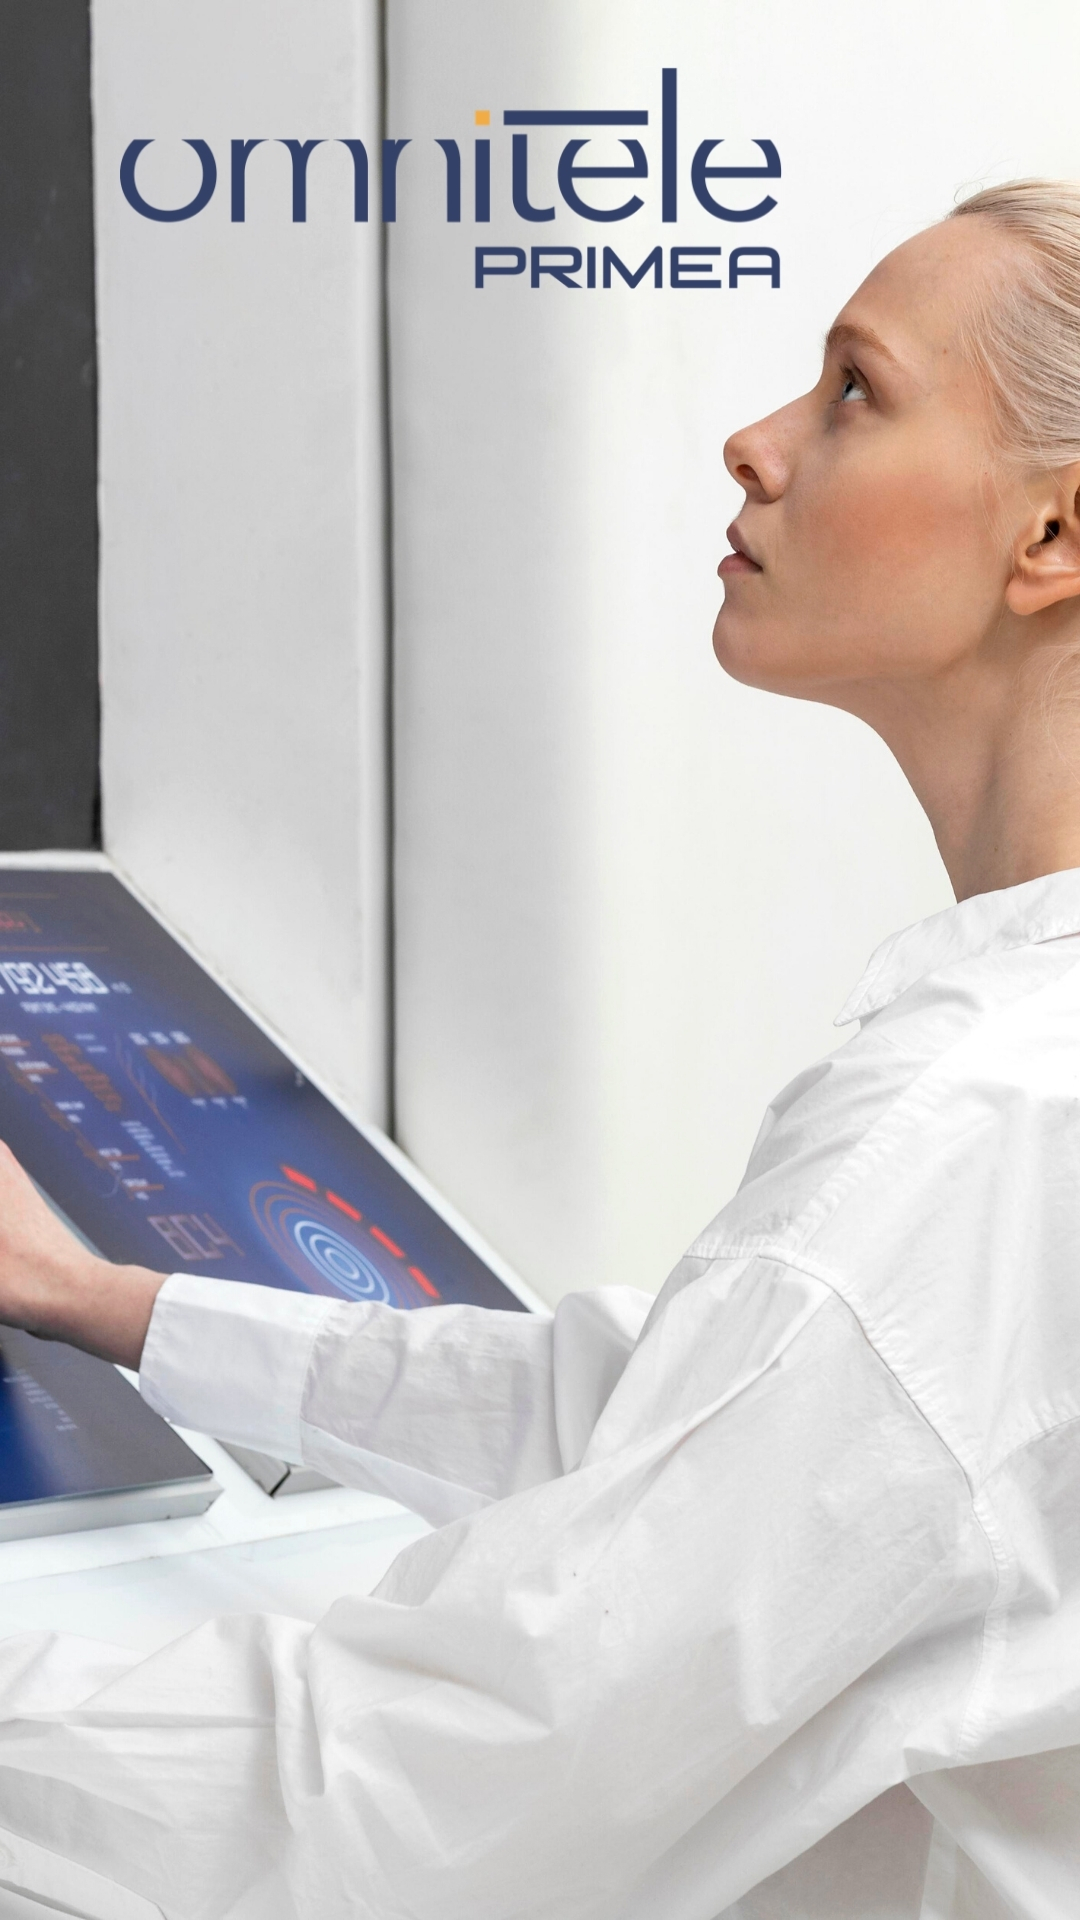 Blonde woman working on digital monitors. White and blue colors